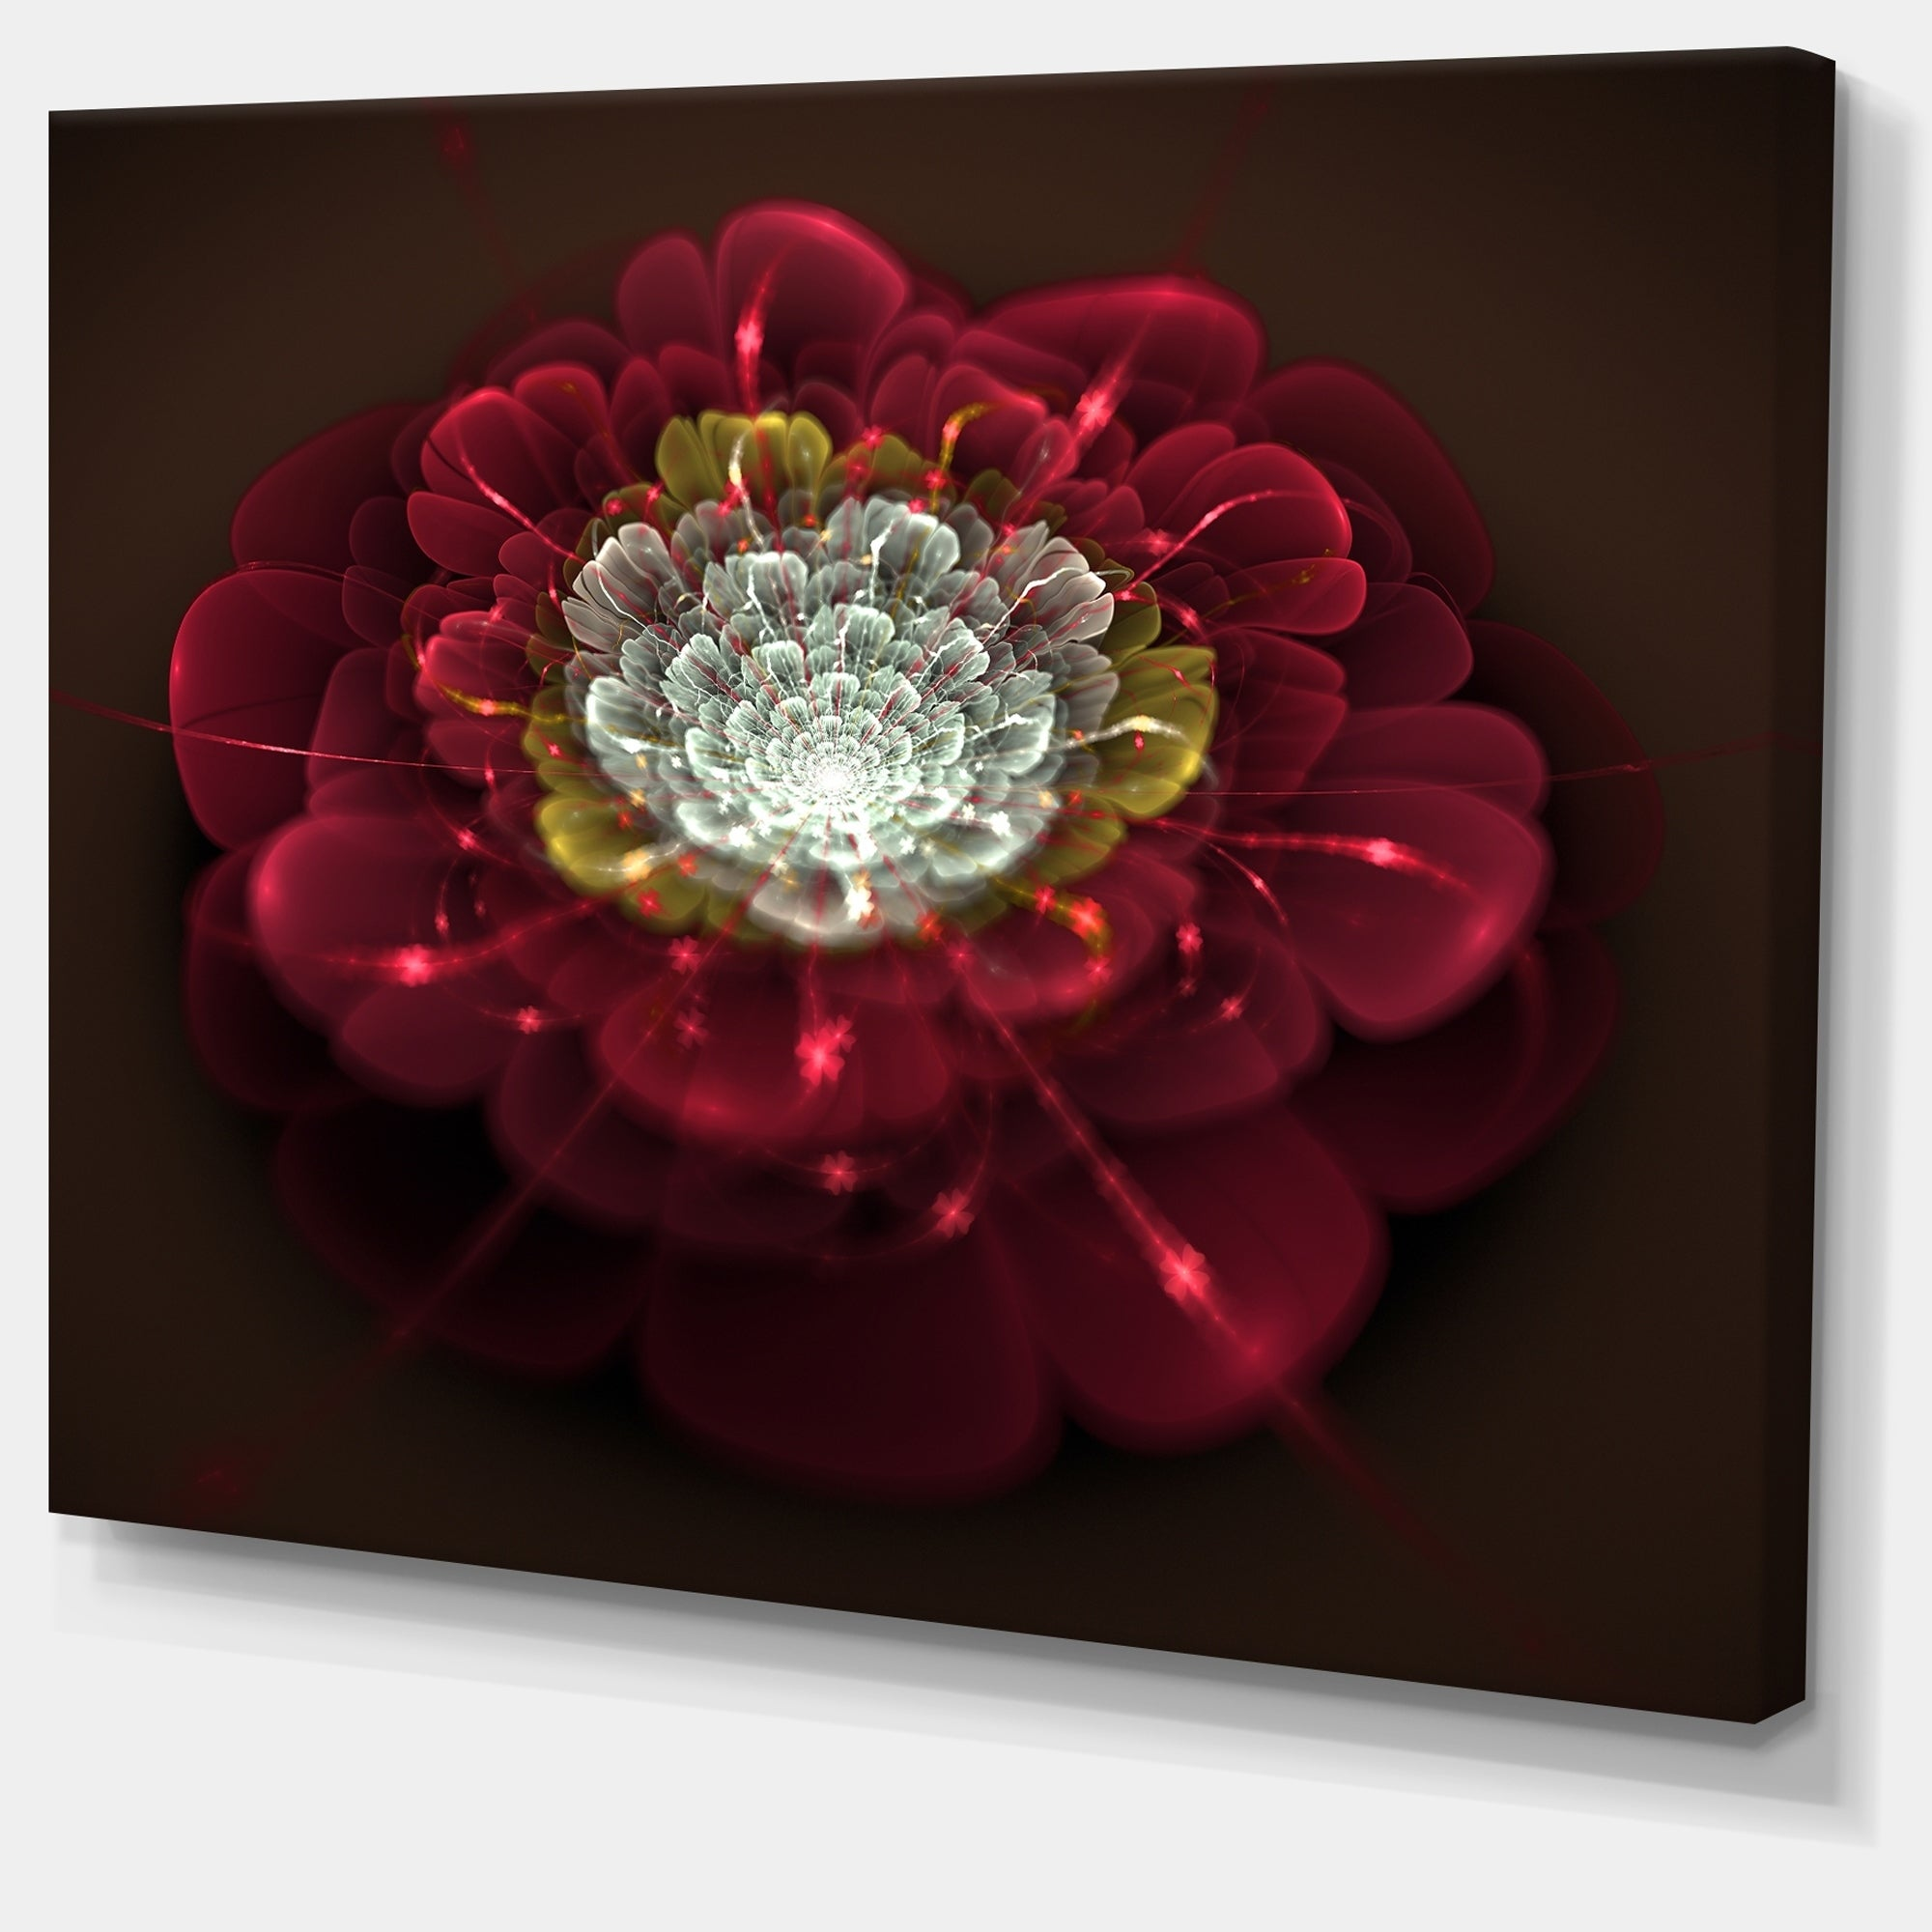 Red-Fractal-Flower-with-White-039-Floral-Digital-Art-Canvas-Small thumbnail 10